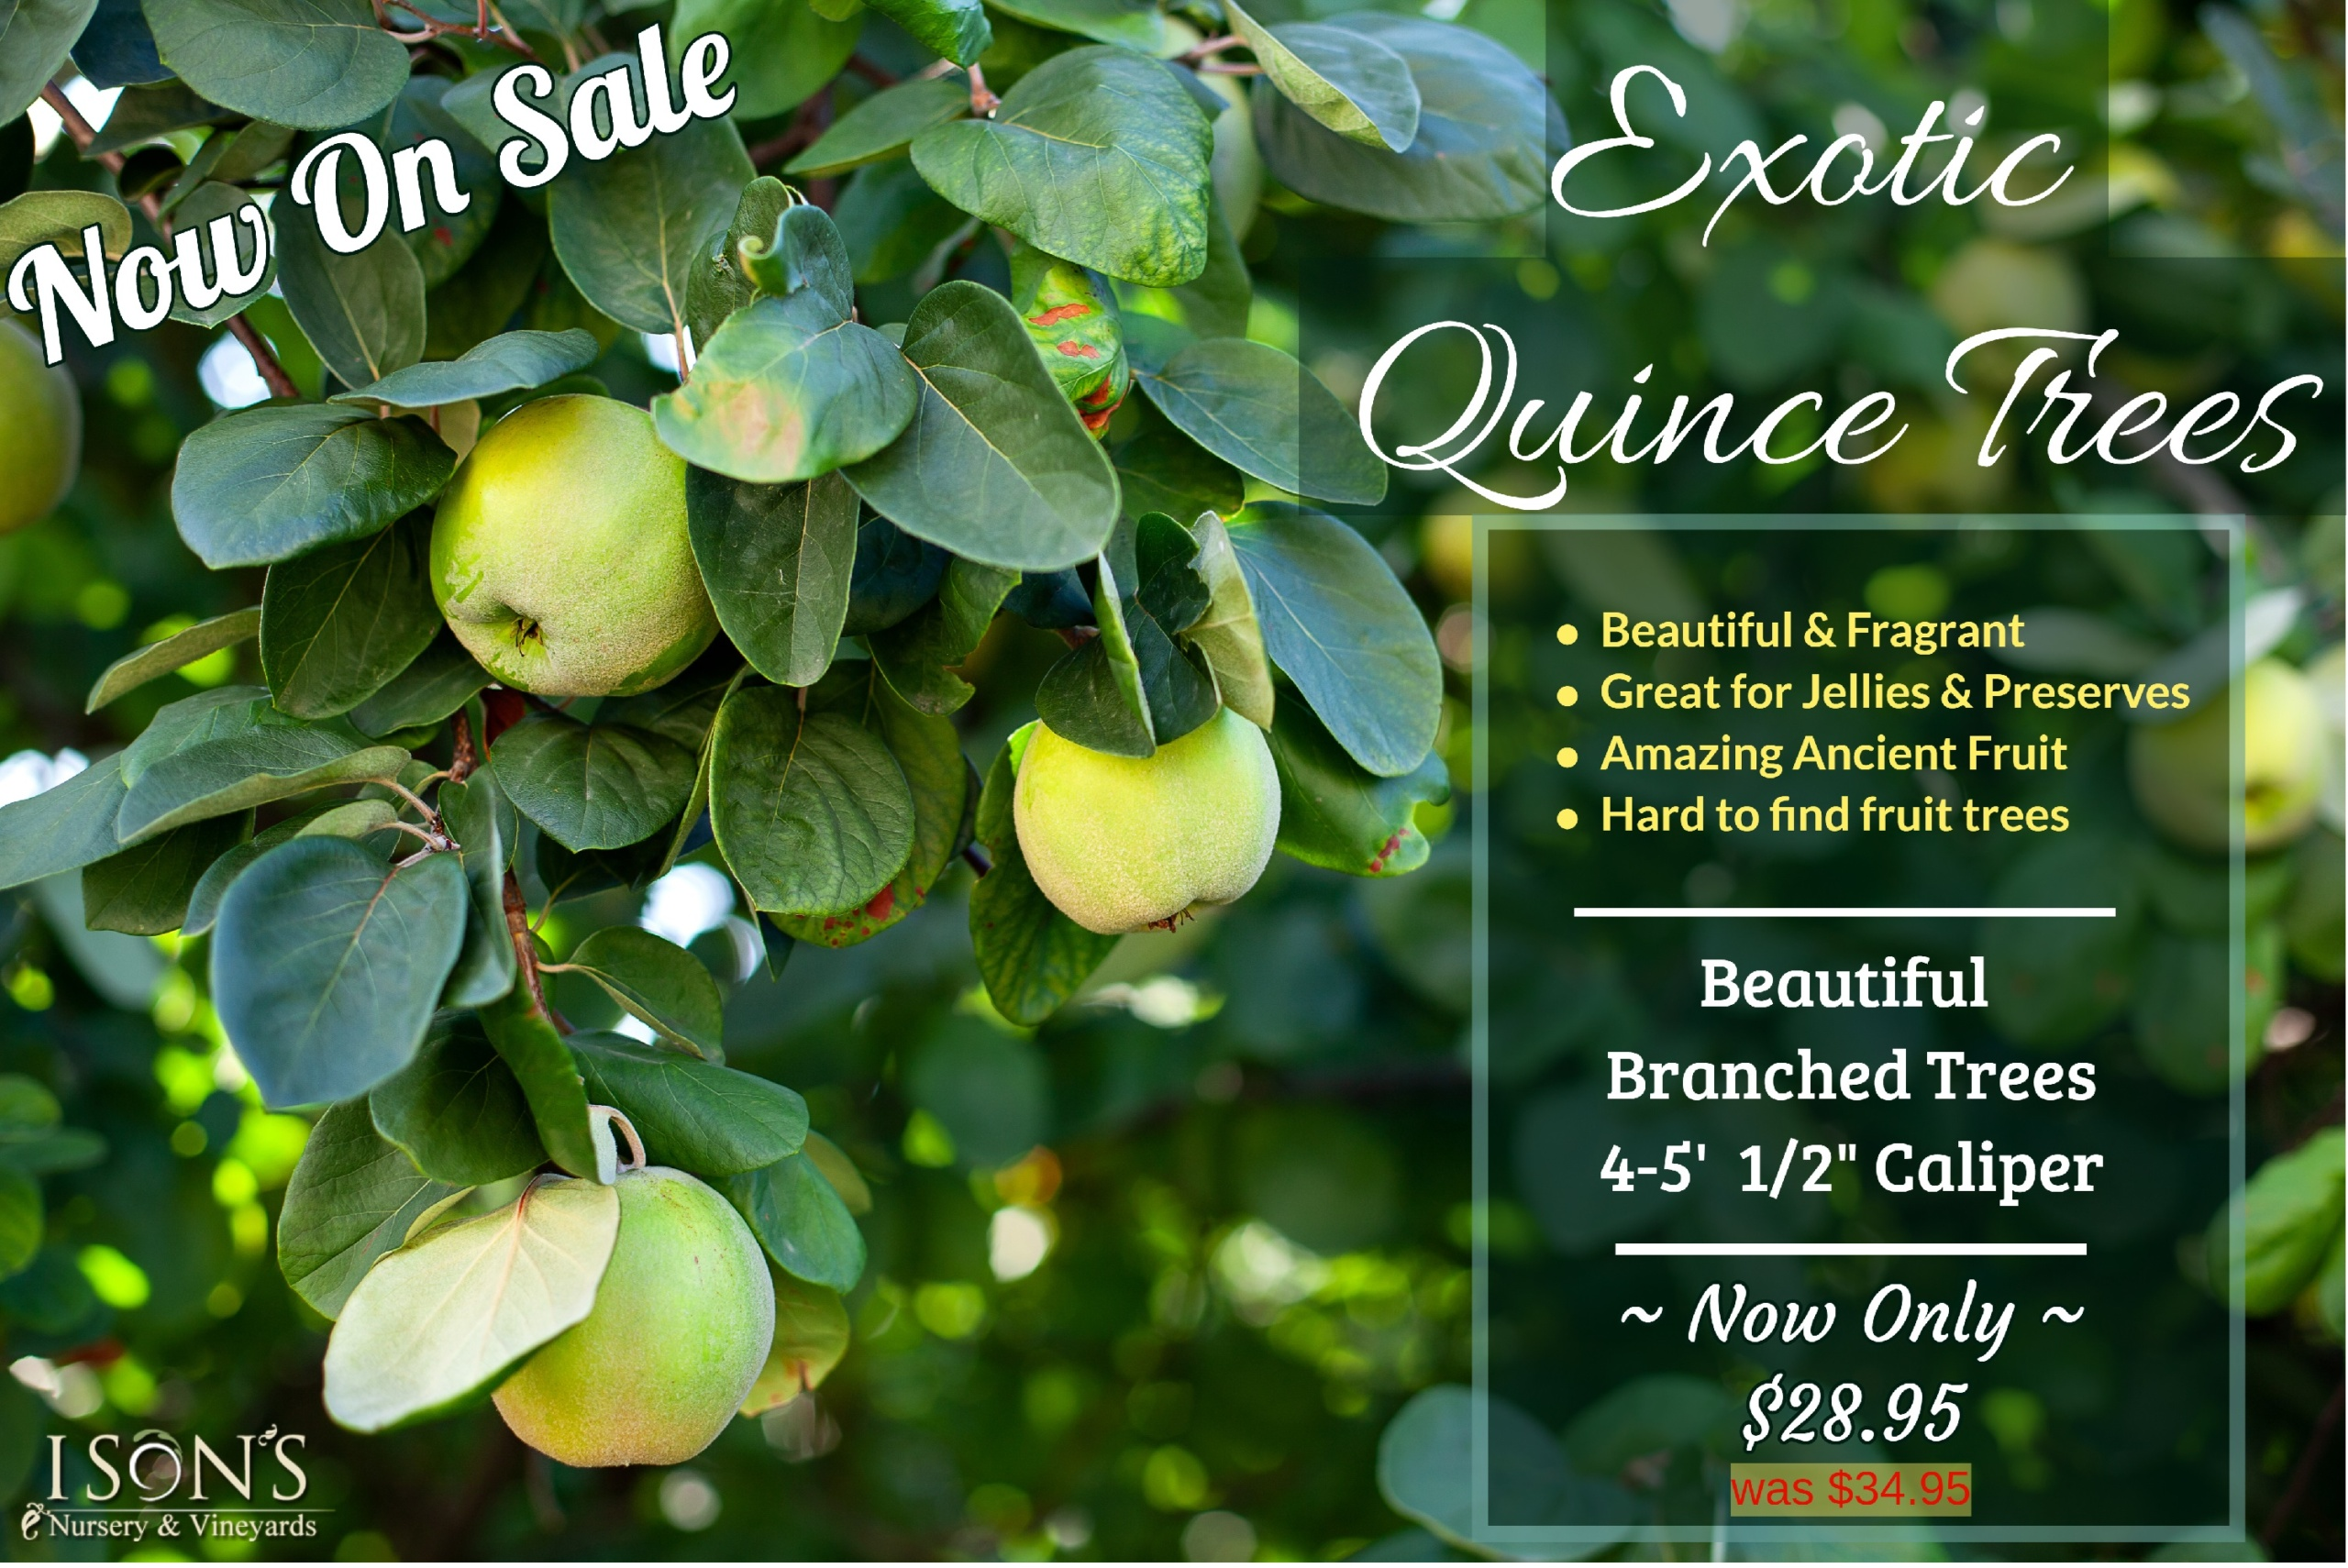 https://www.isons.com/wp-content/uploads/2020/02/Quince-Tree-Banner-scaled.jpg